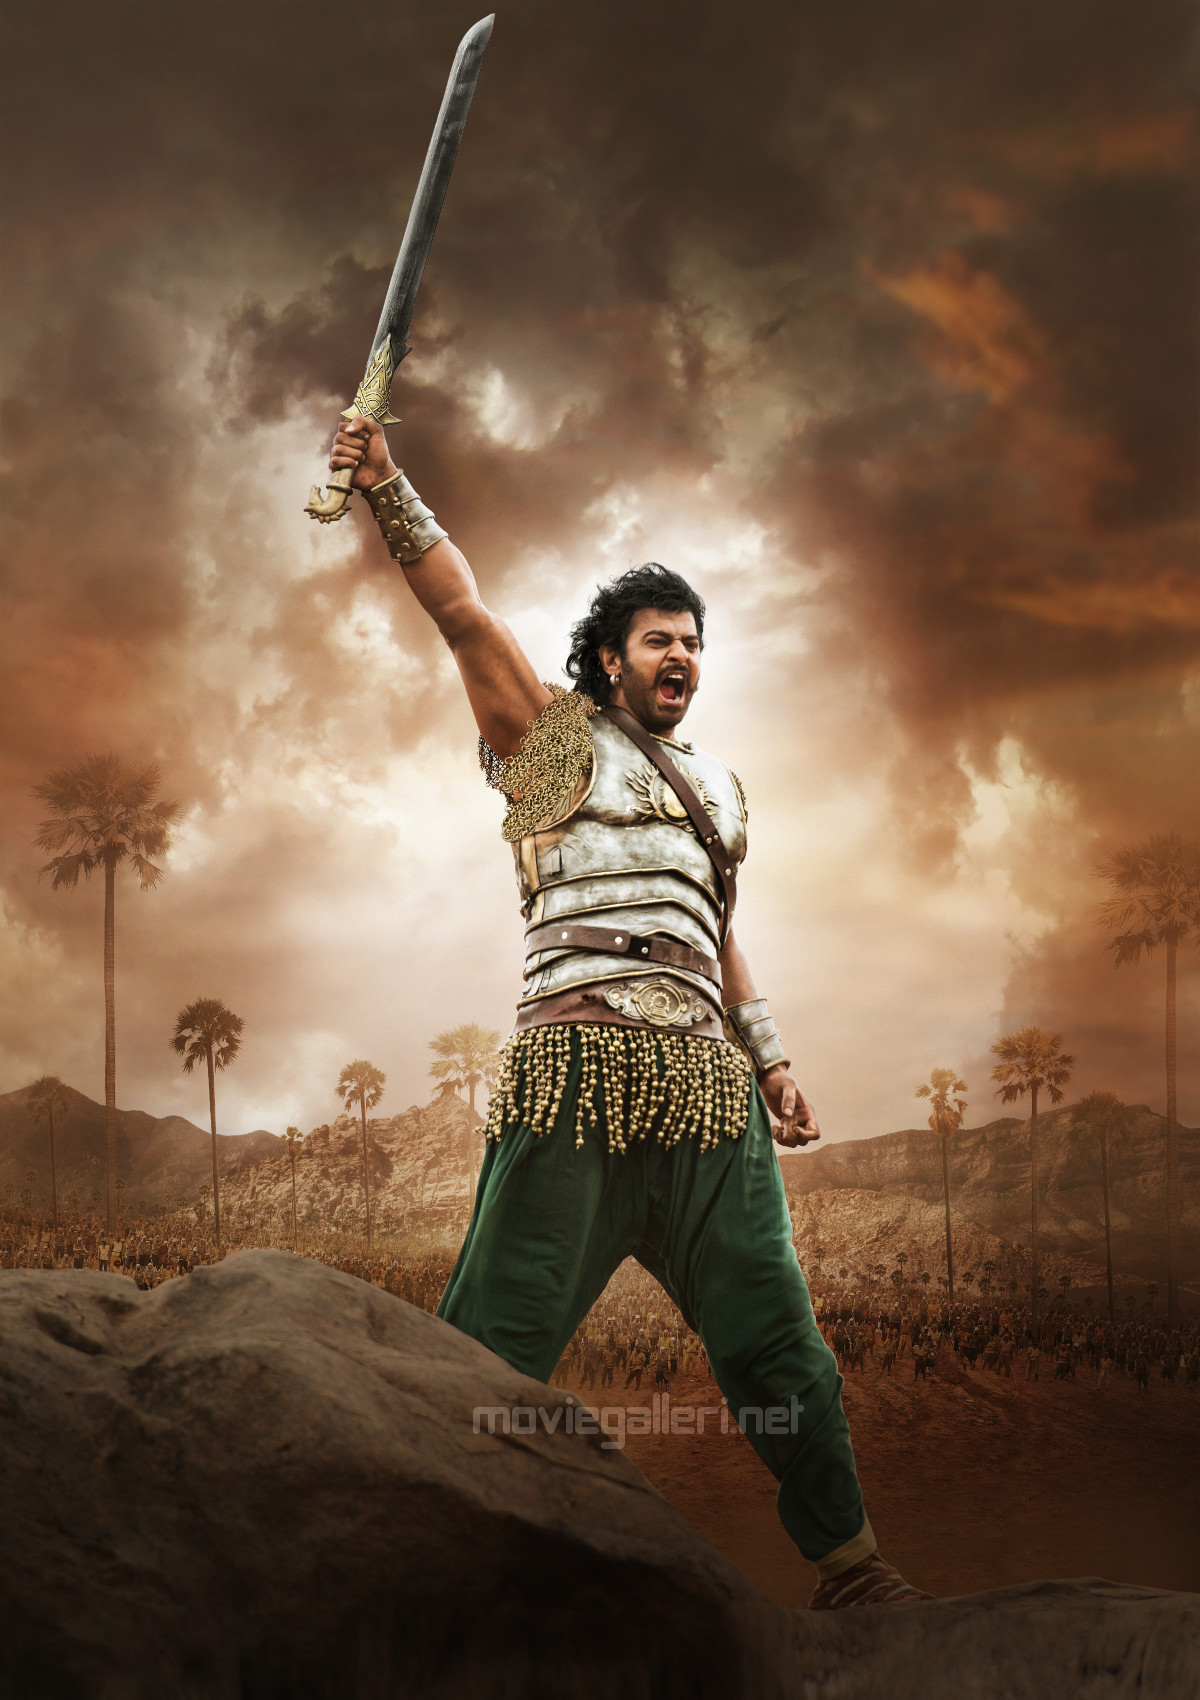 Hd wallpaper bahubali 2 - Prabhas Baahubali 2 Movie Hd Images